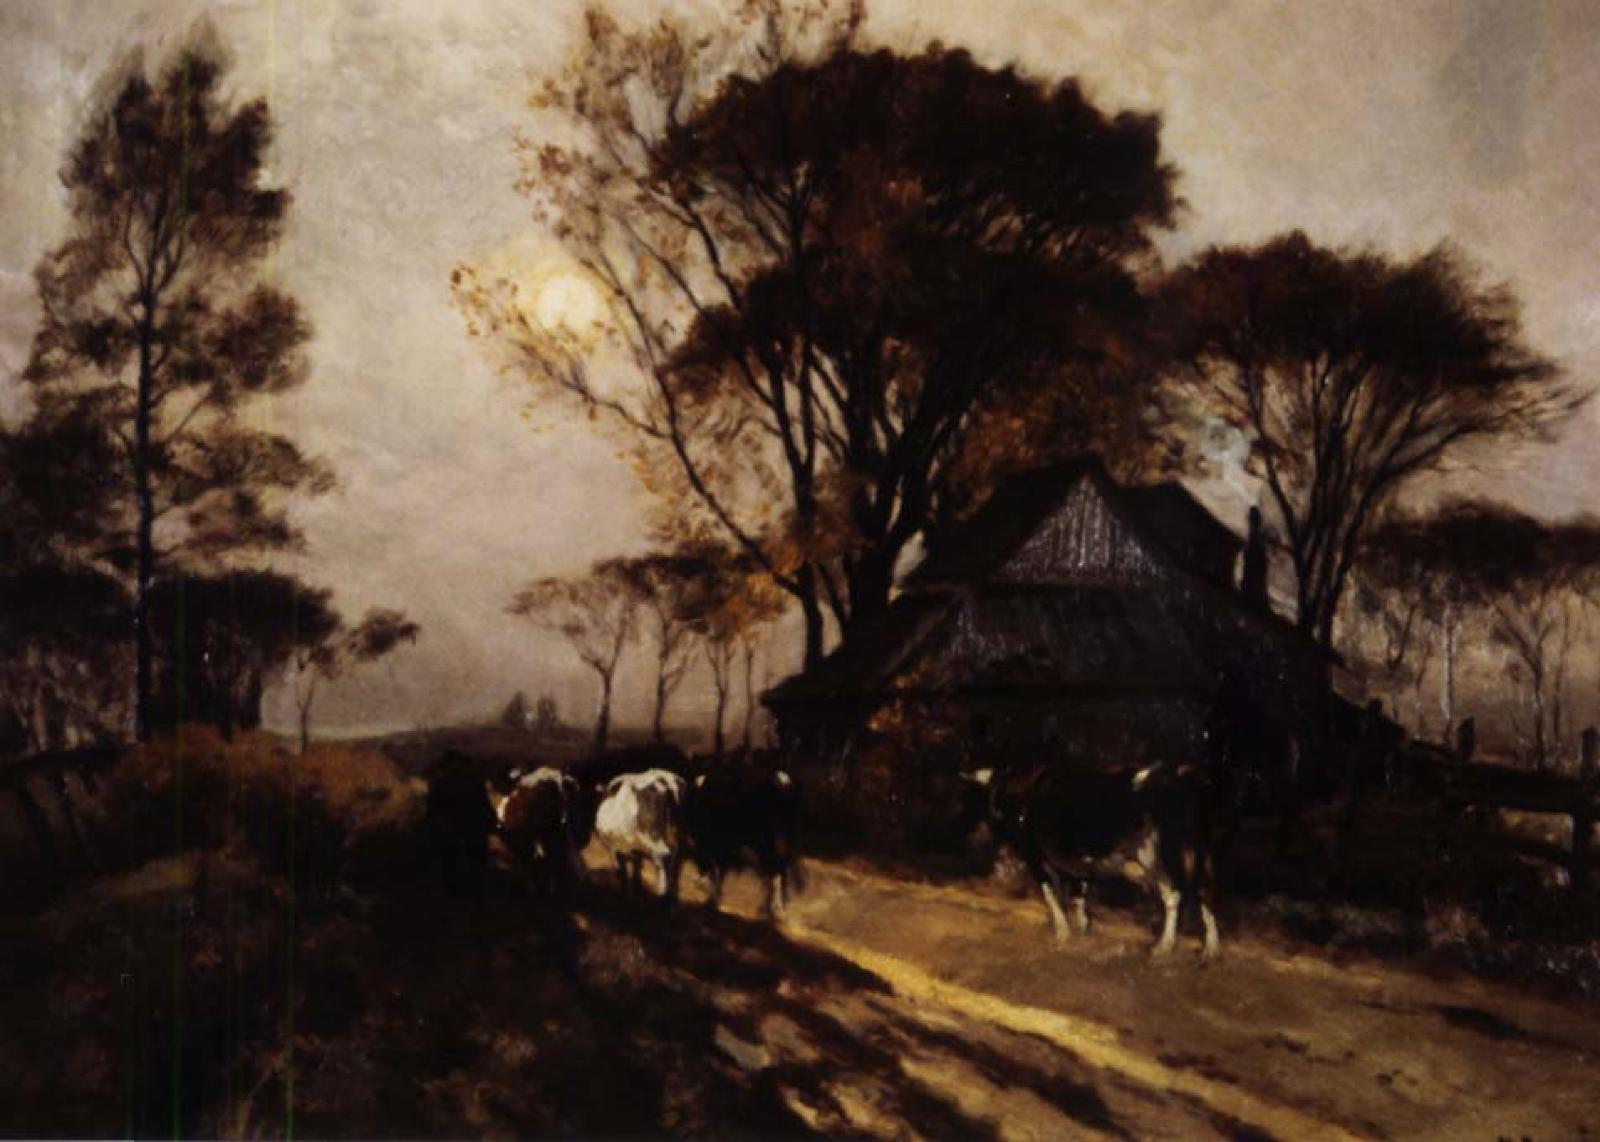 Four cows walking on a path away from the viewer.